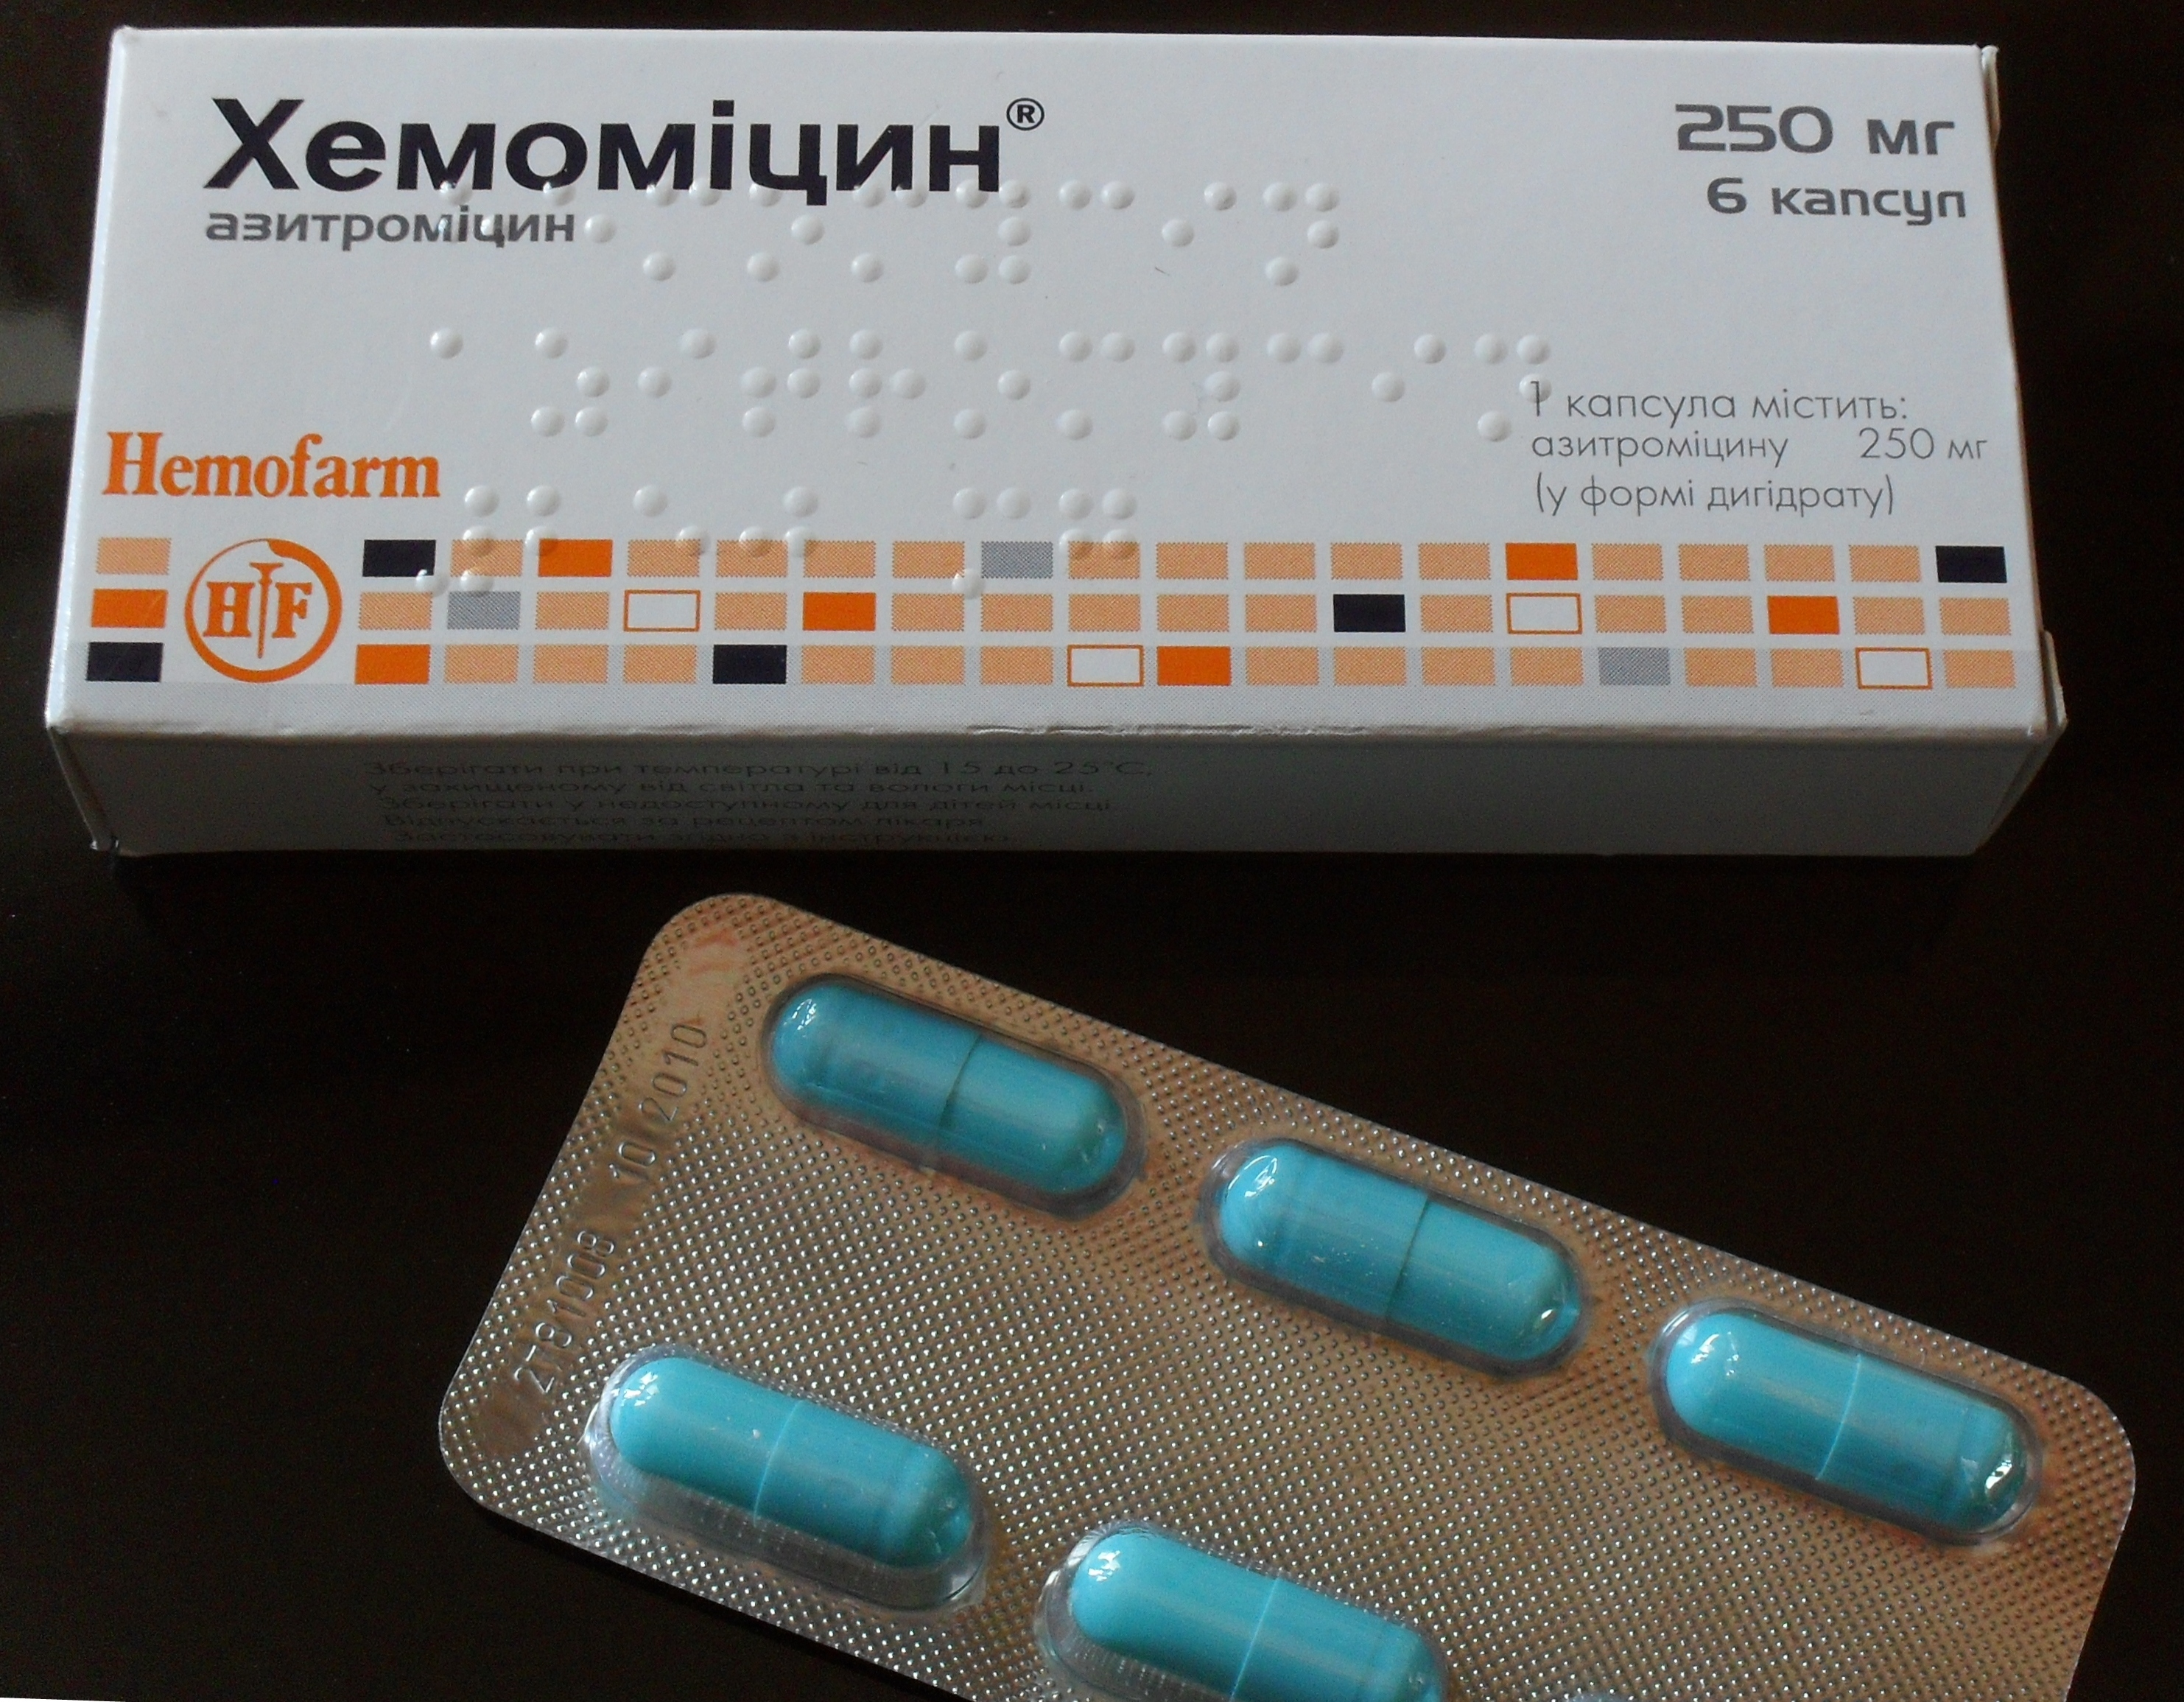 azitromicina diidratada 500mg, diidratada azithromycin 500mg, Spanish, English   US, Translation, human translation, automatic translation.